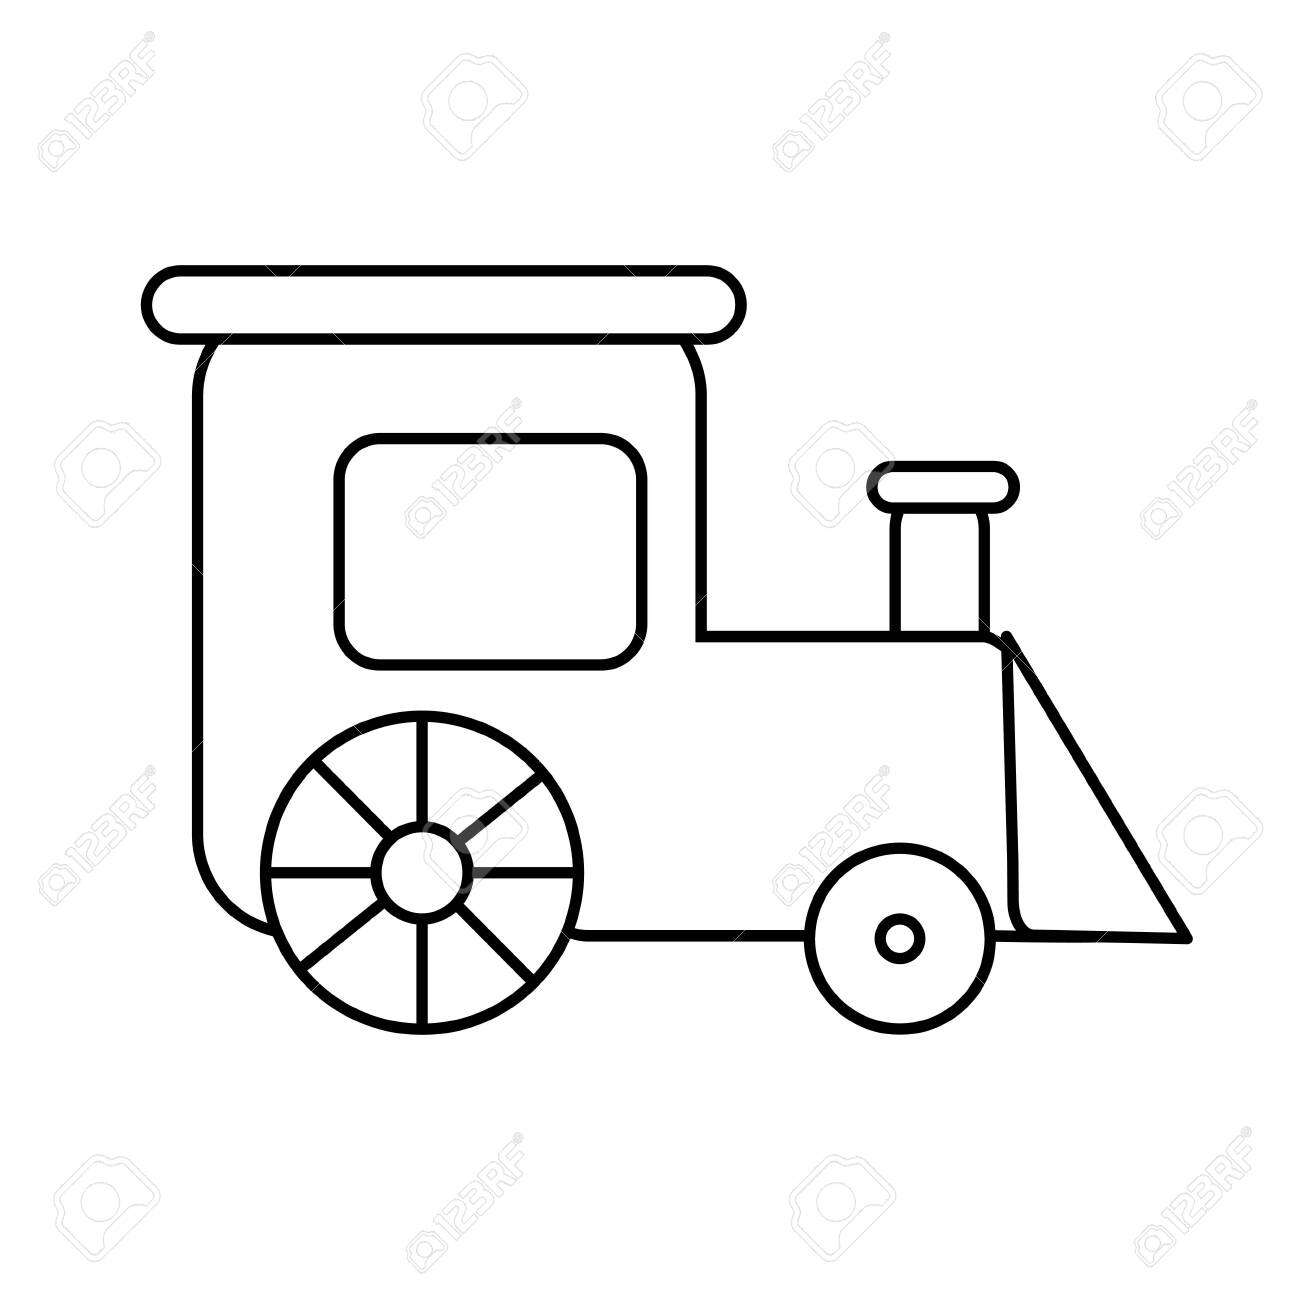 Coloring Page Outline Of Train Toy Simple Shapes Vector Illustration Royalty Free Cliparts Vectors And Stock Illustration Image 140908957